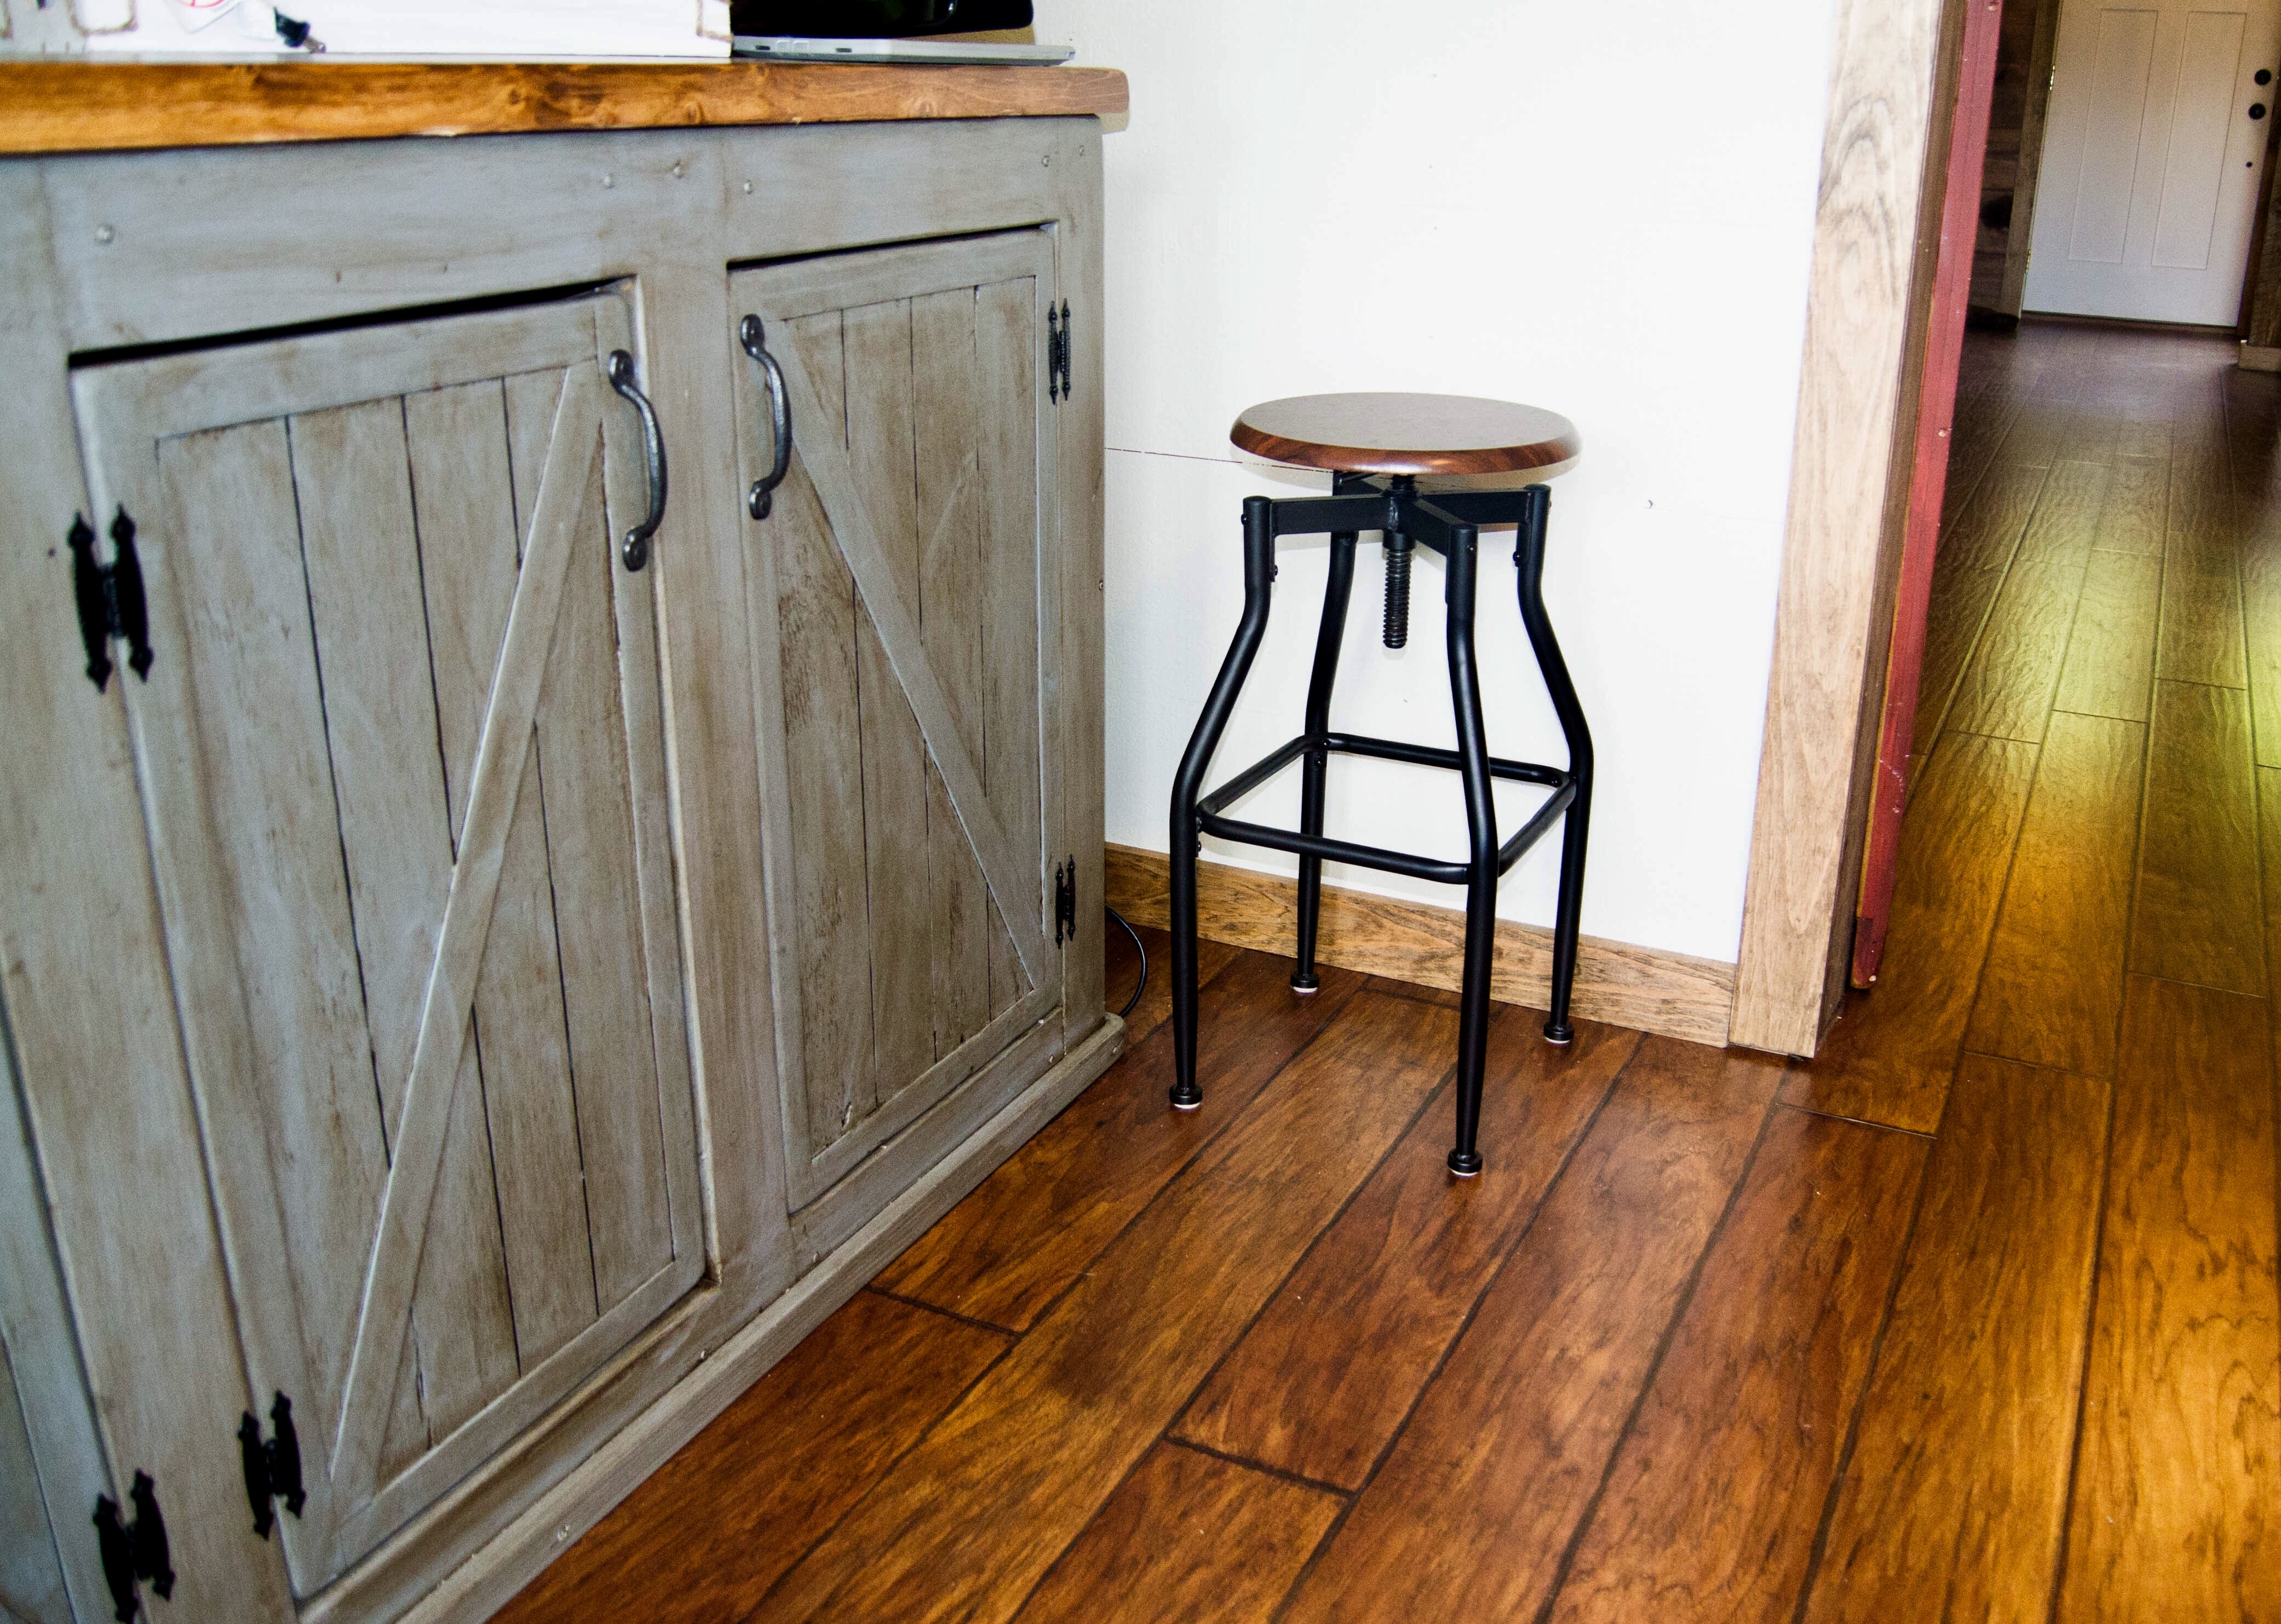 Scred The Sliding Barn Doors Rustic Cabinet Instead